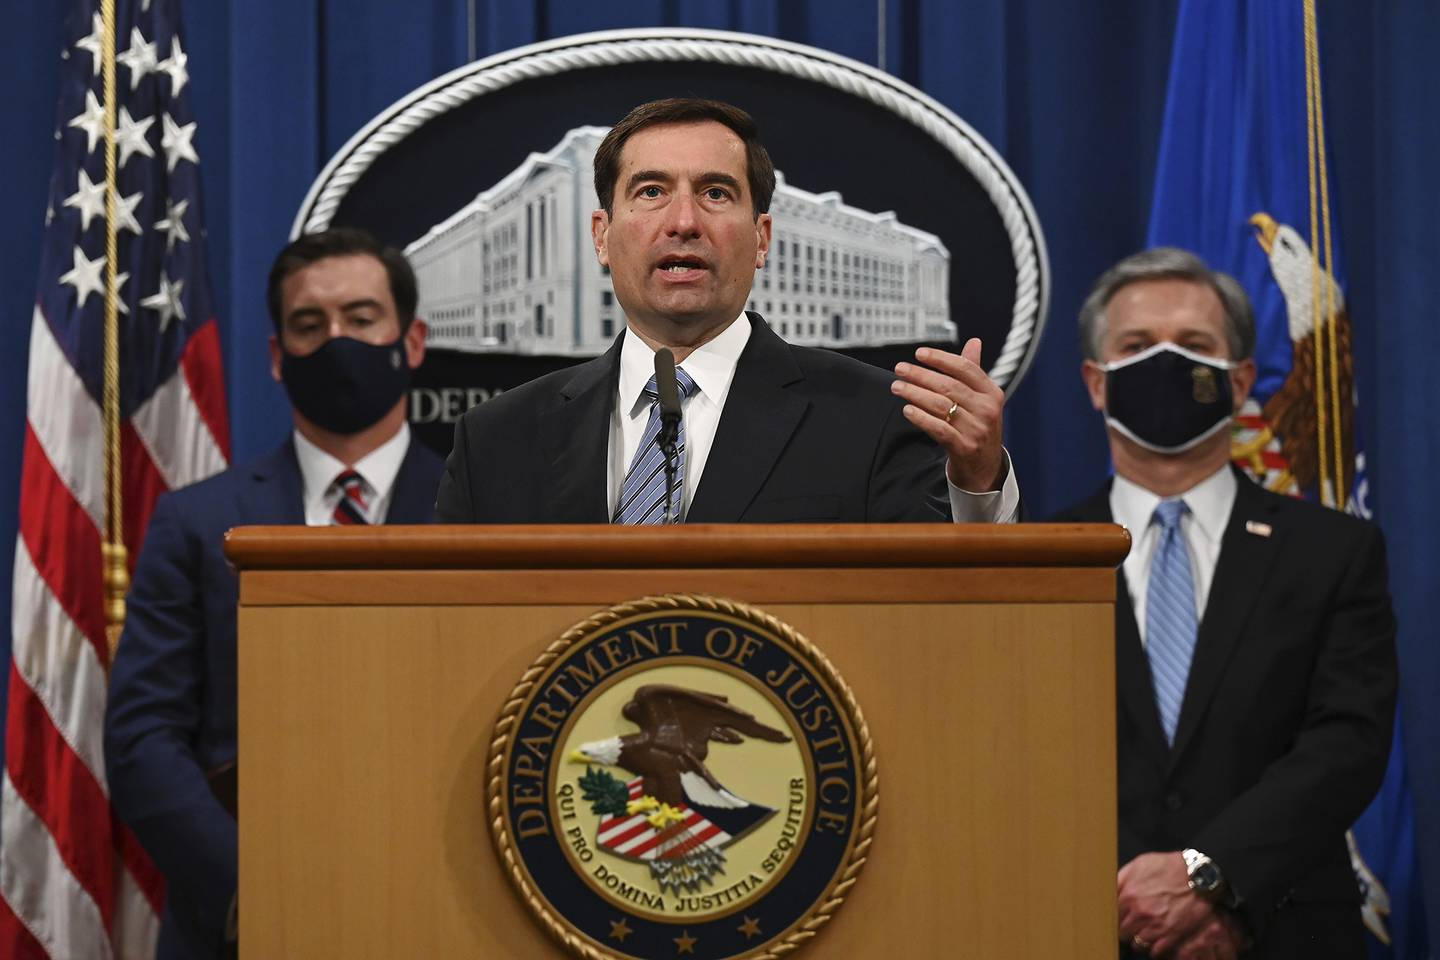 Assistant Attorney General of the National Security Division John Demers speaks during a press conference at the Department of Justice, Wednesday,  Oct. 7, 2020, in Washington.